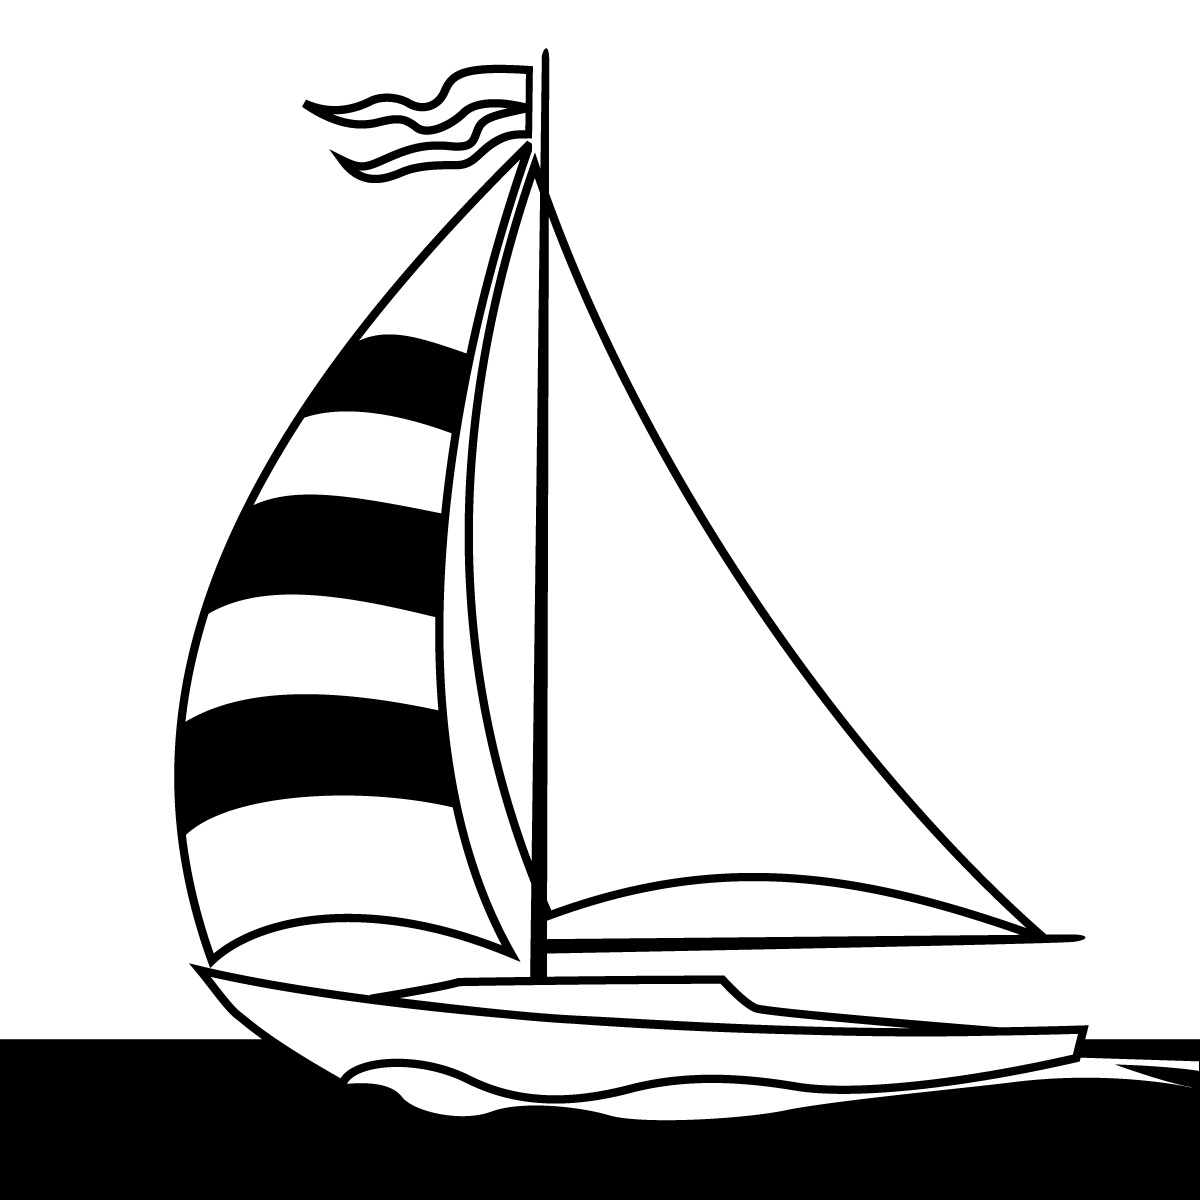 Sailboat Graphic